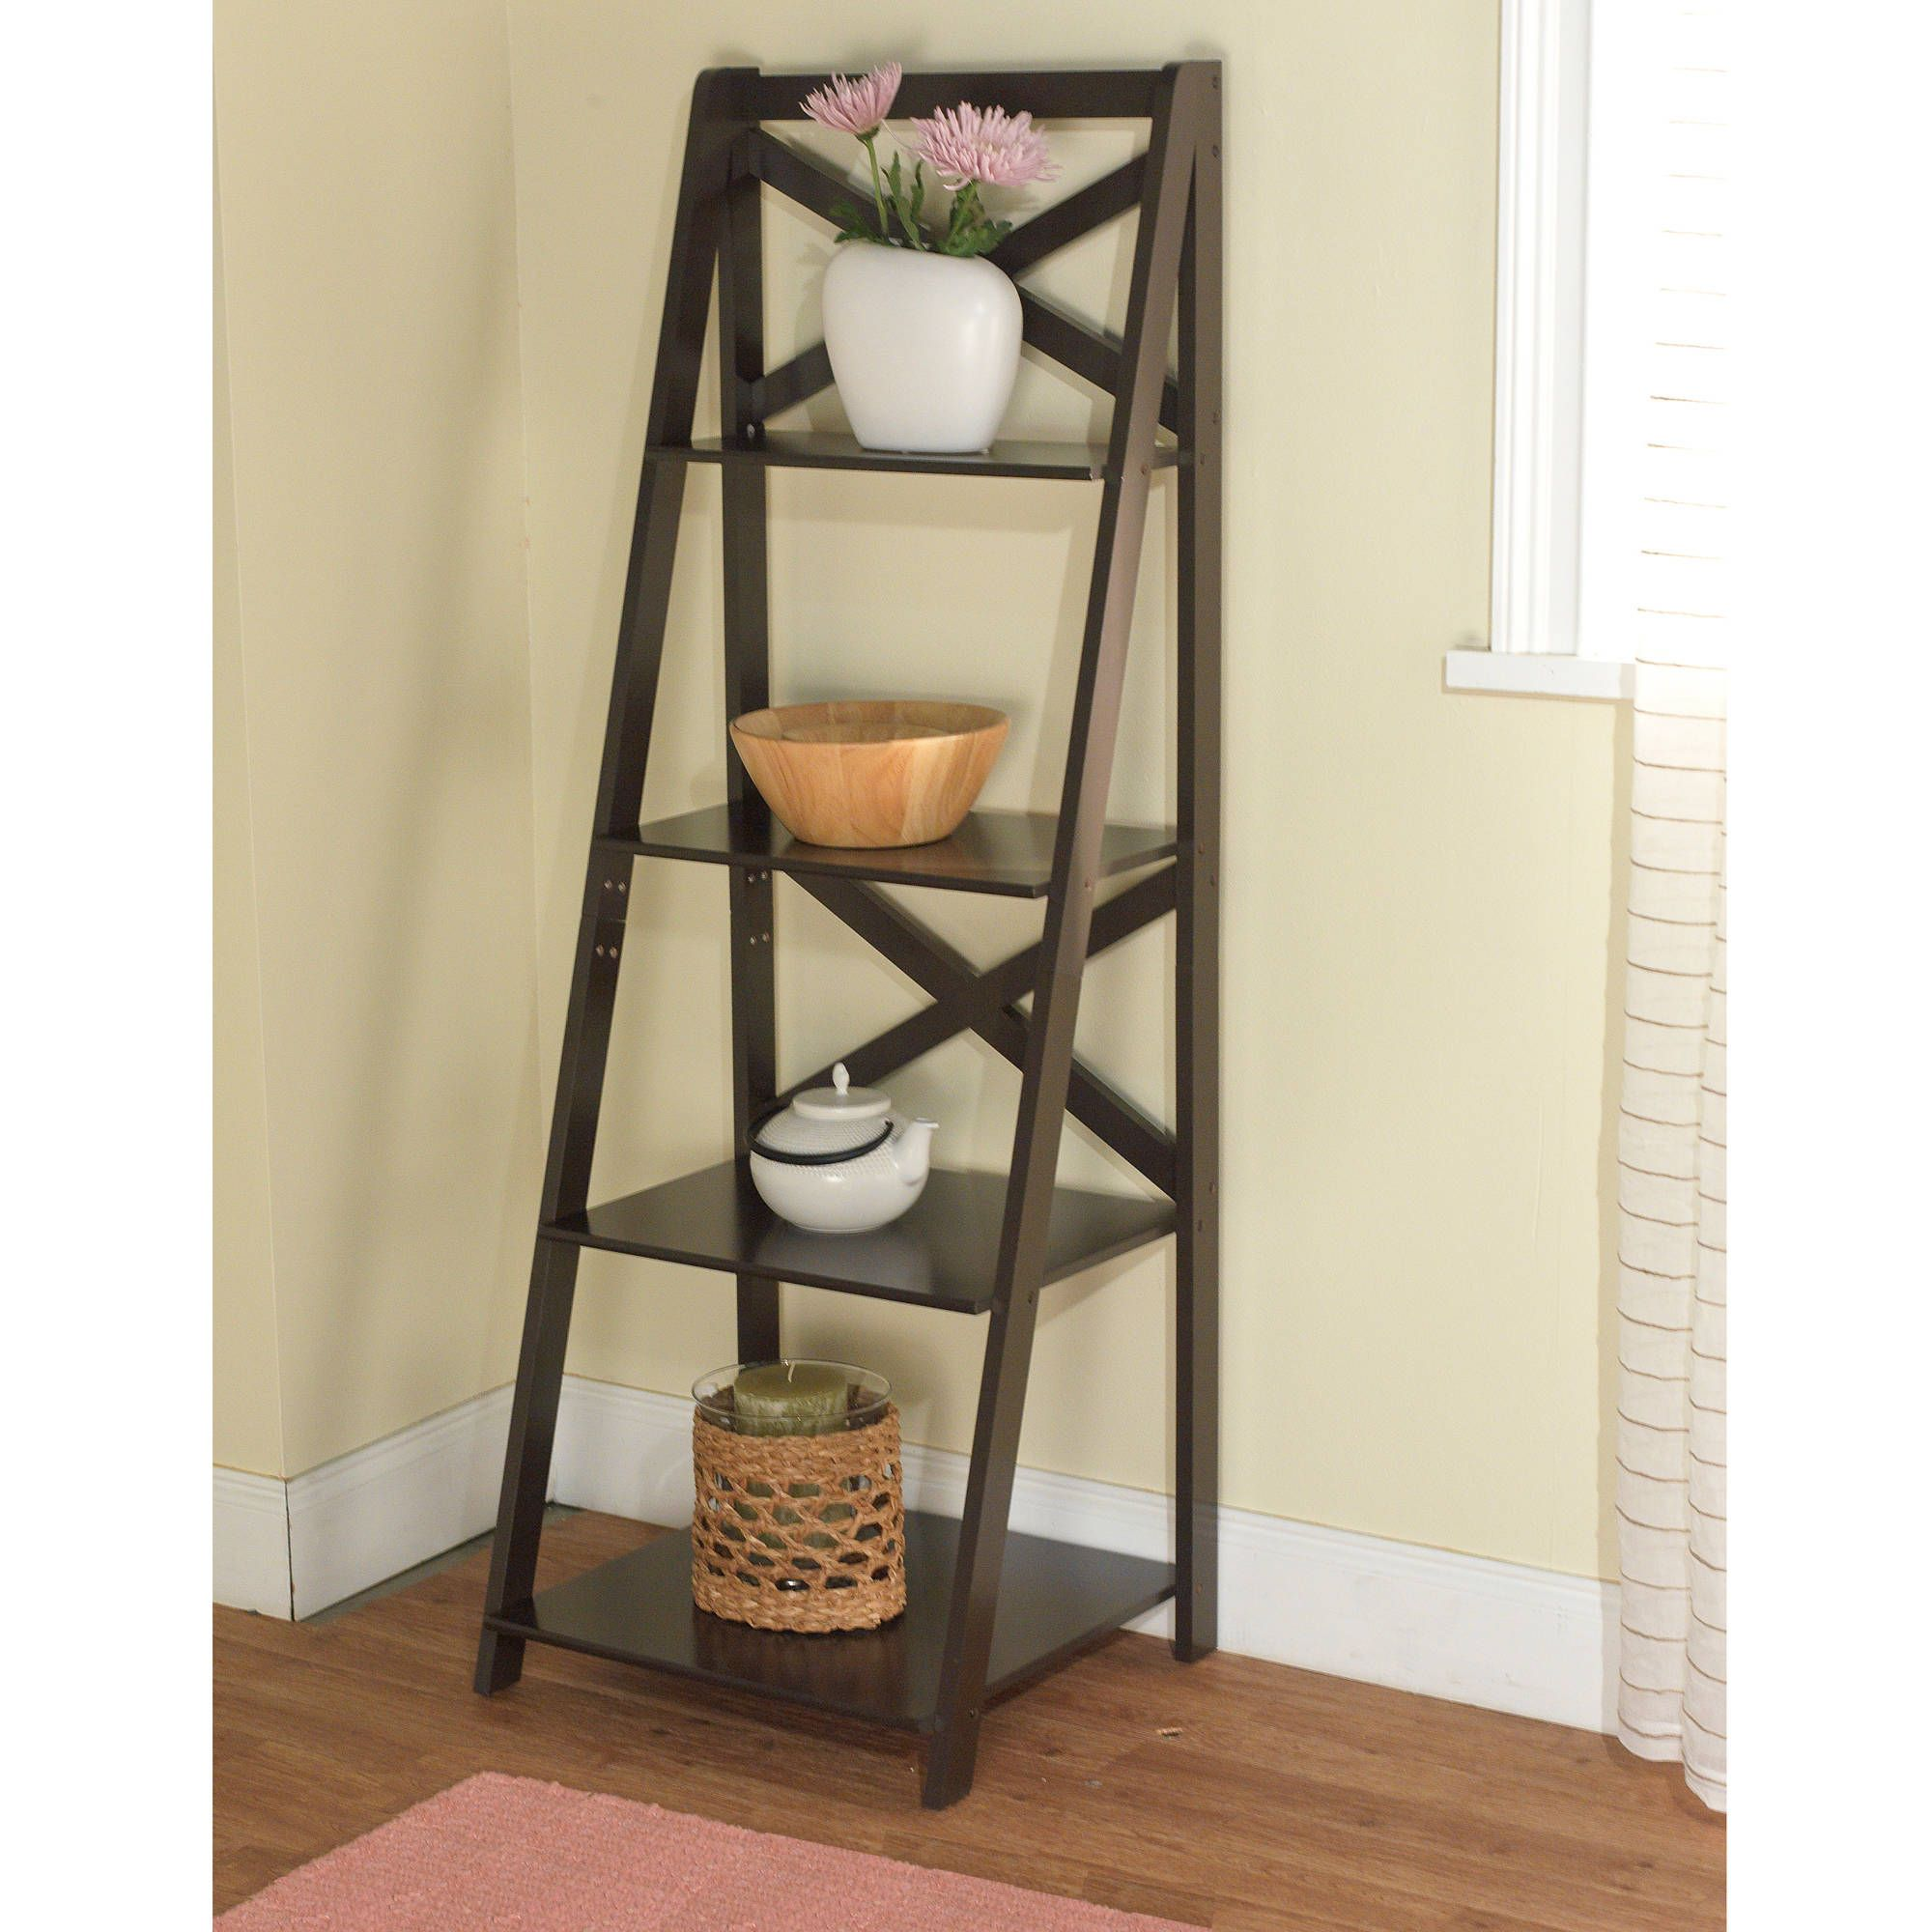 windows shelf belt pot leaning ladder bookshelf her storage small antique middle room plus at as simple shelves ideas natural bookcase exceptional rack with ikea wells rustic